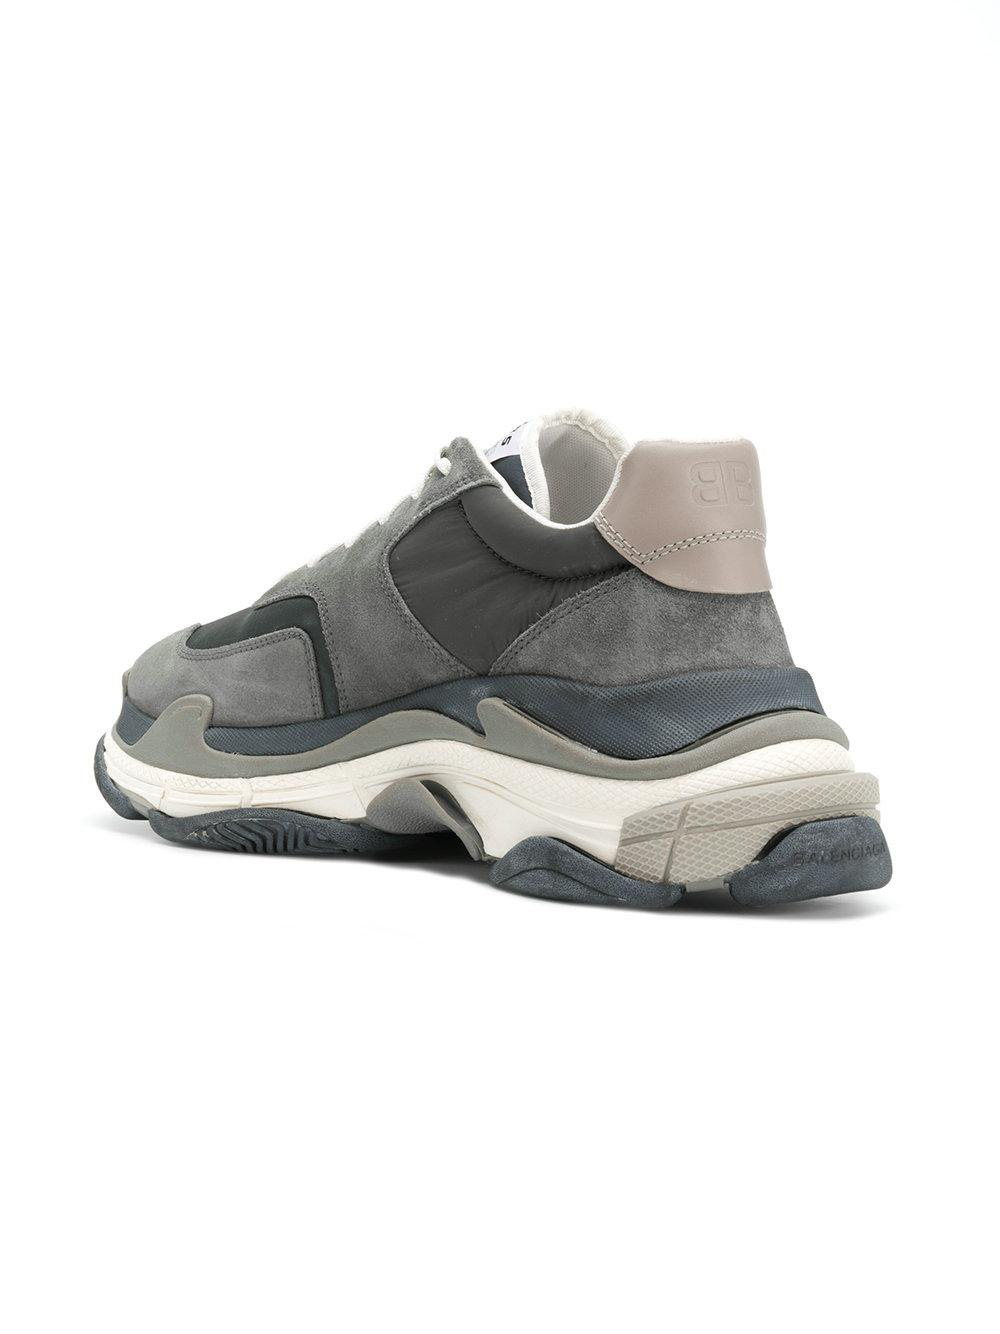 Balenciaga Leather Triple S Sneakers in Grey (Gray) for